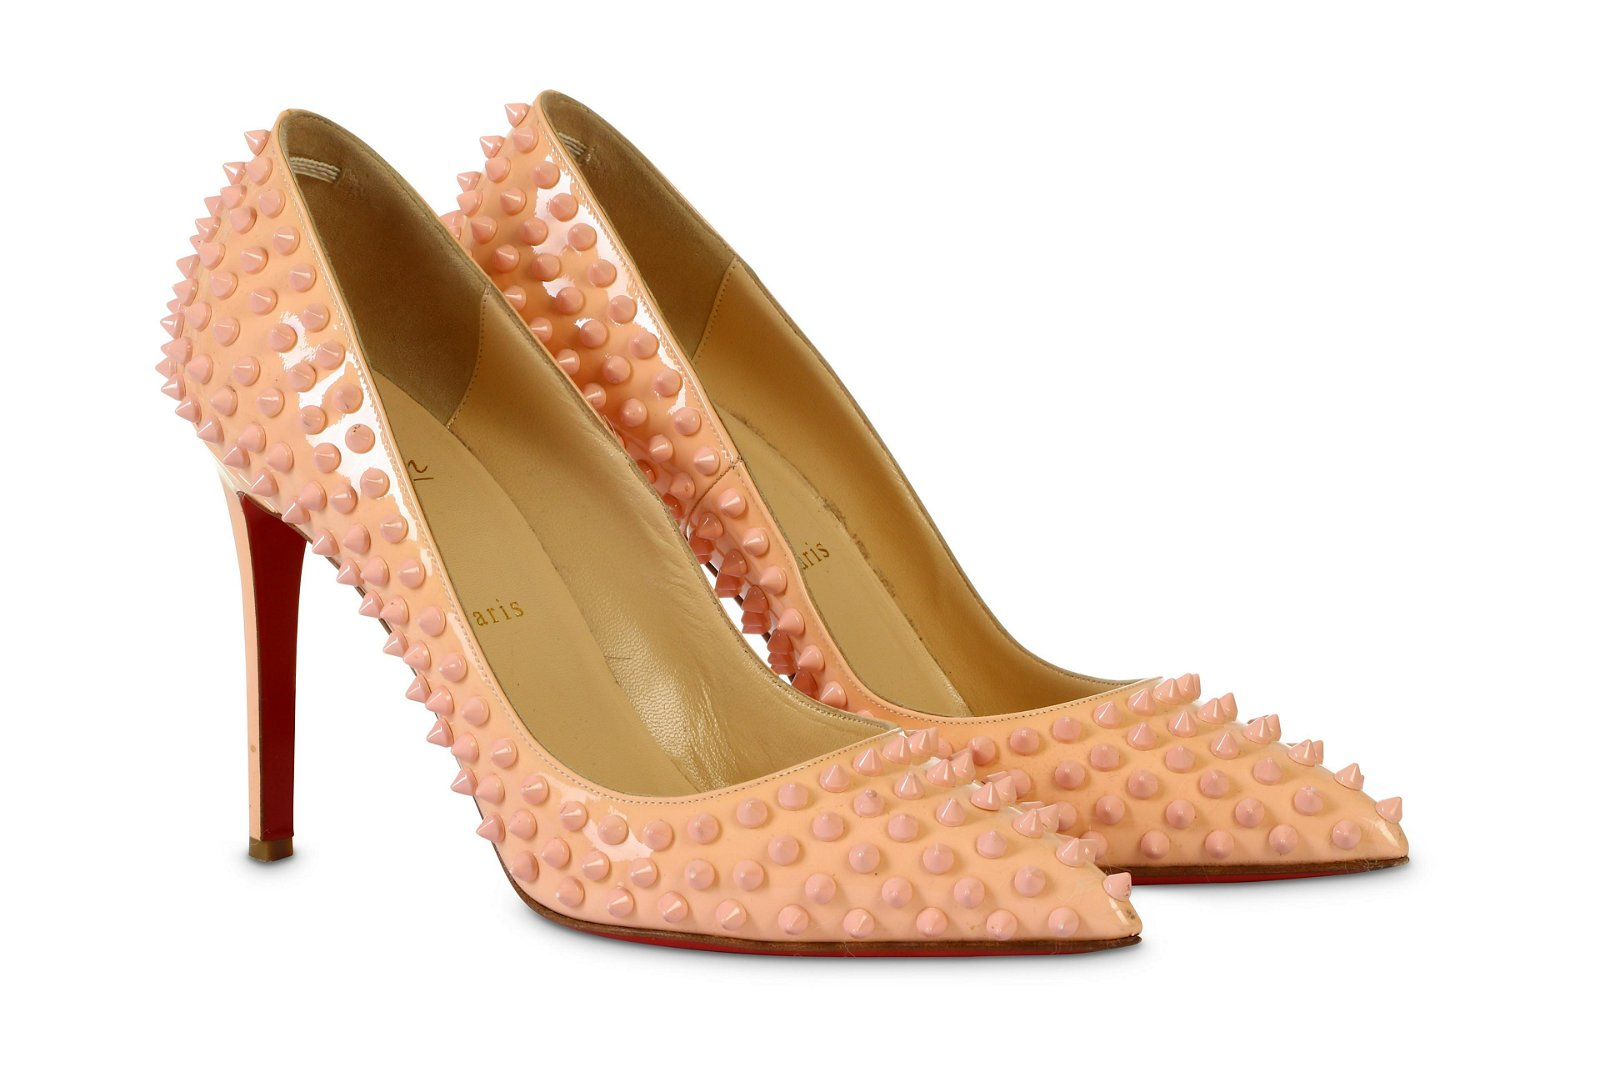 Christian Louboutin Pink Spiked Pigalle 110 Pumps